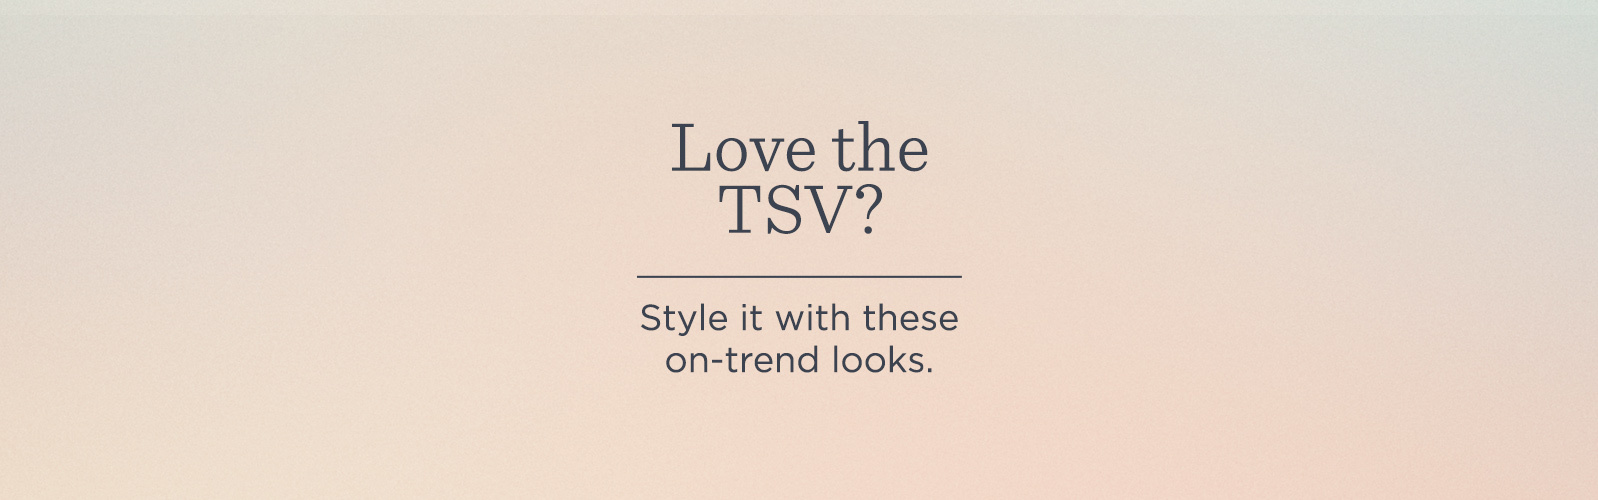 Love the TSV?  Style it with these on-trend looks.